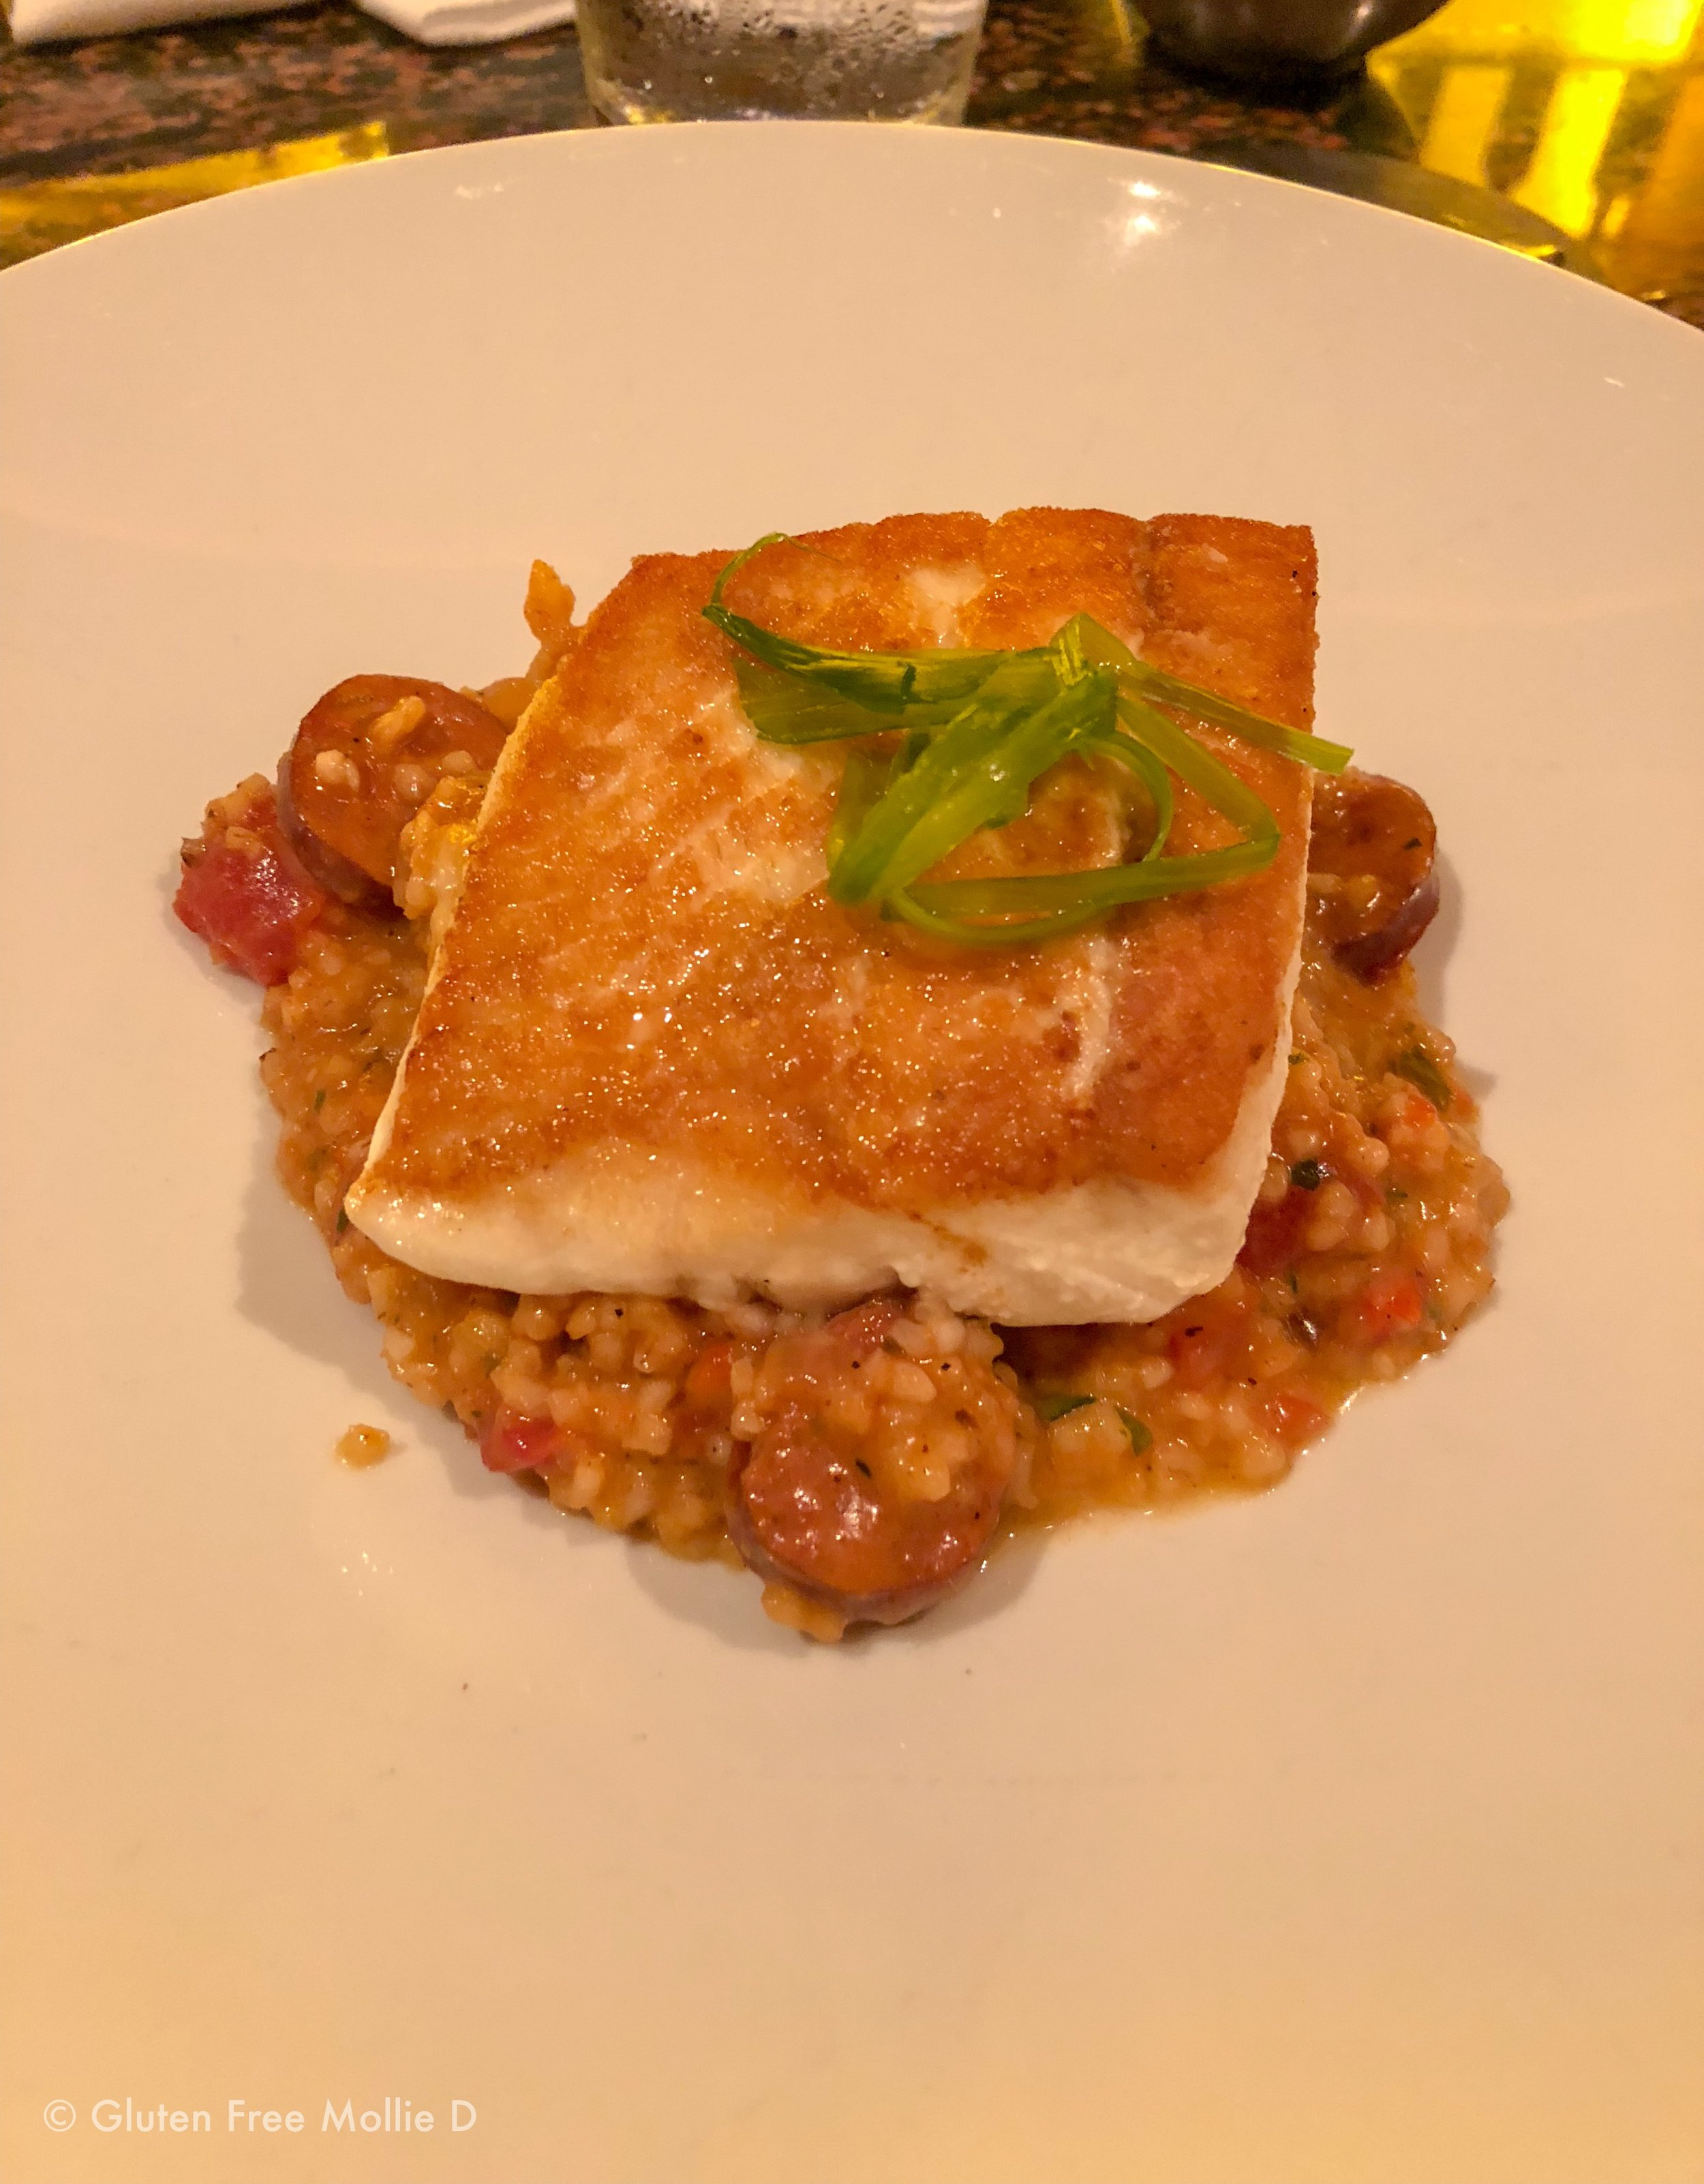 Seared halibut over jambalaya with andouille sausage. I licked the plate clean.